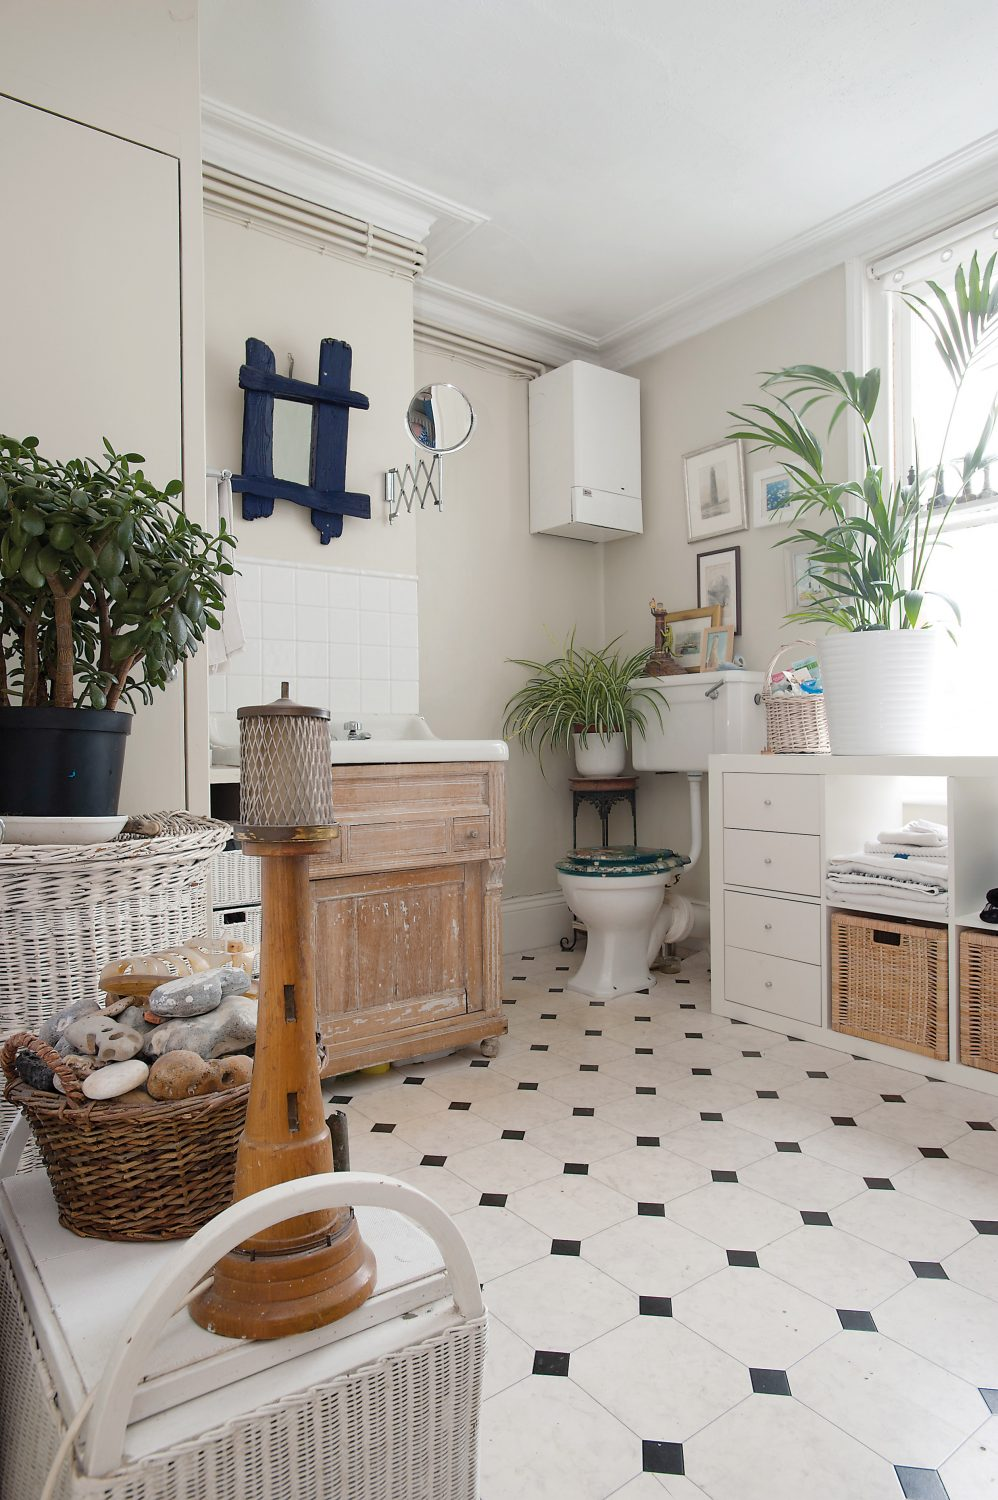 houseplants are trendy once more, and looking especially cool in bathrooms